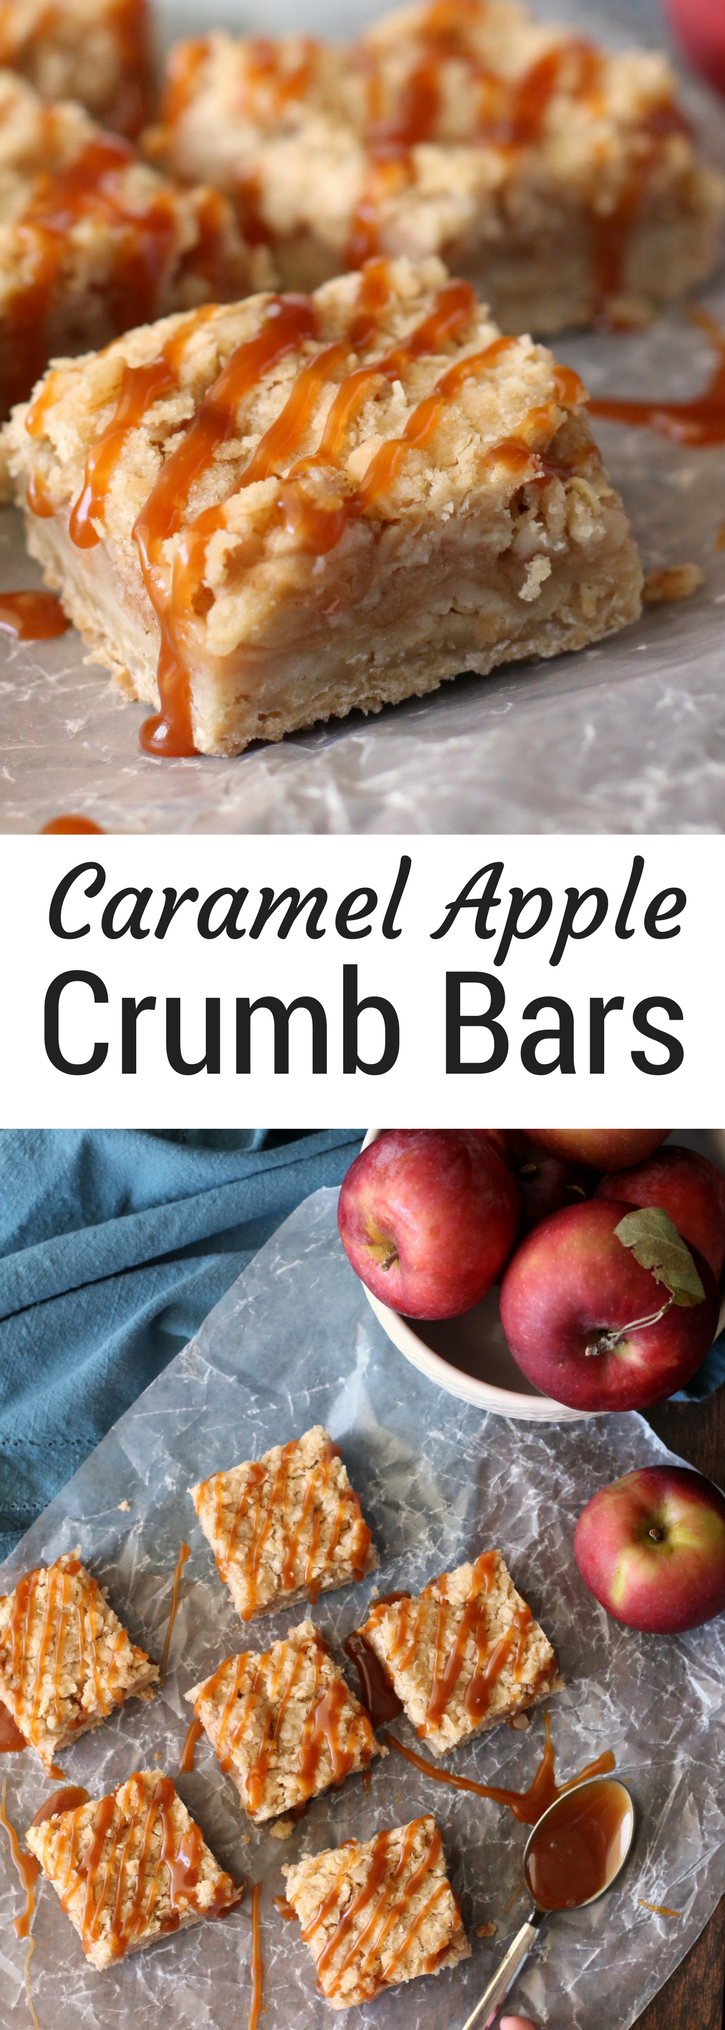 Caramel Apple Crumb Bars - Chocolate with Grace